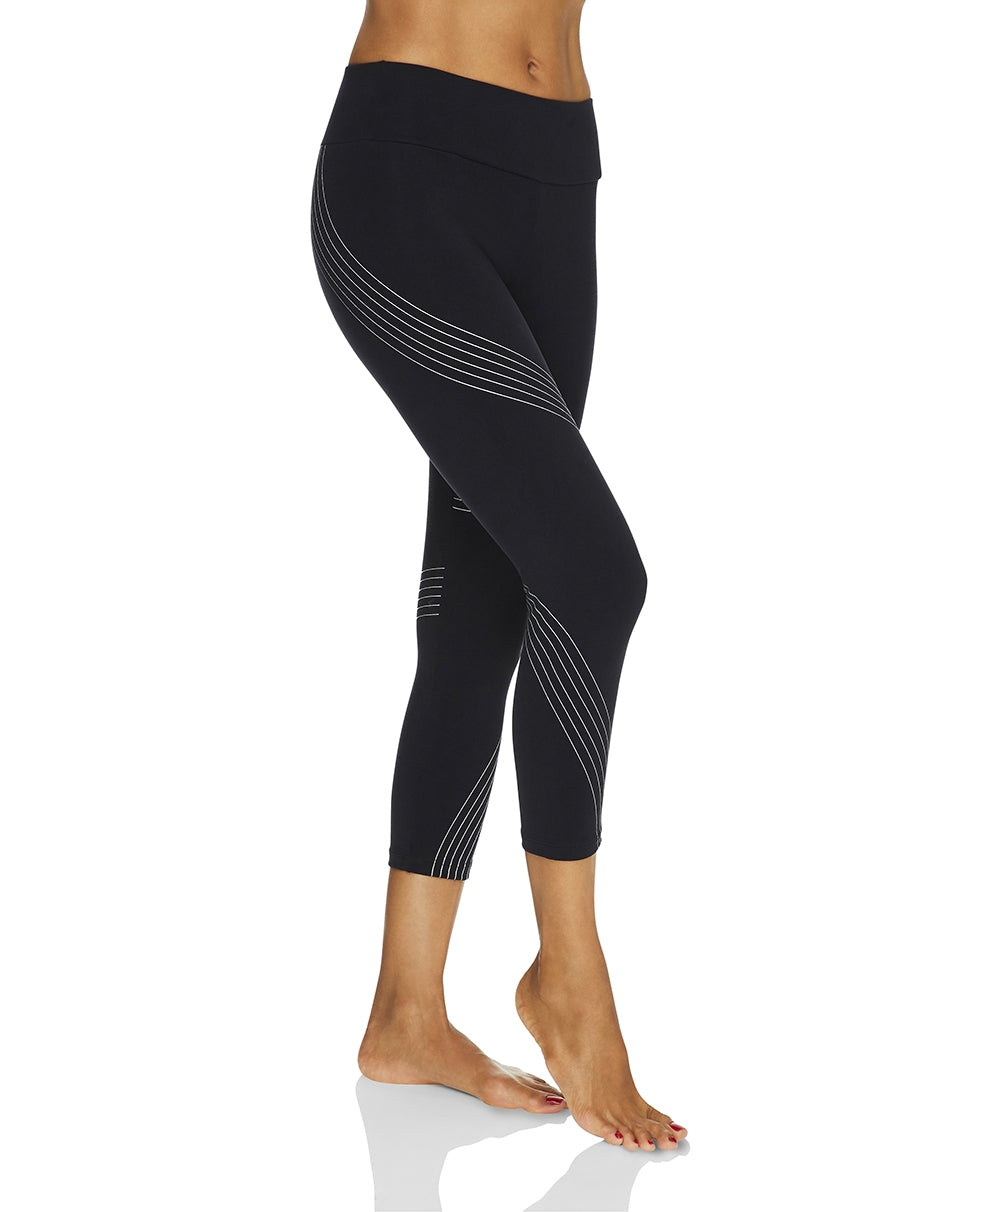 Malta Supplex Legging